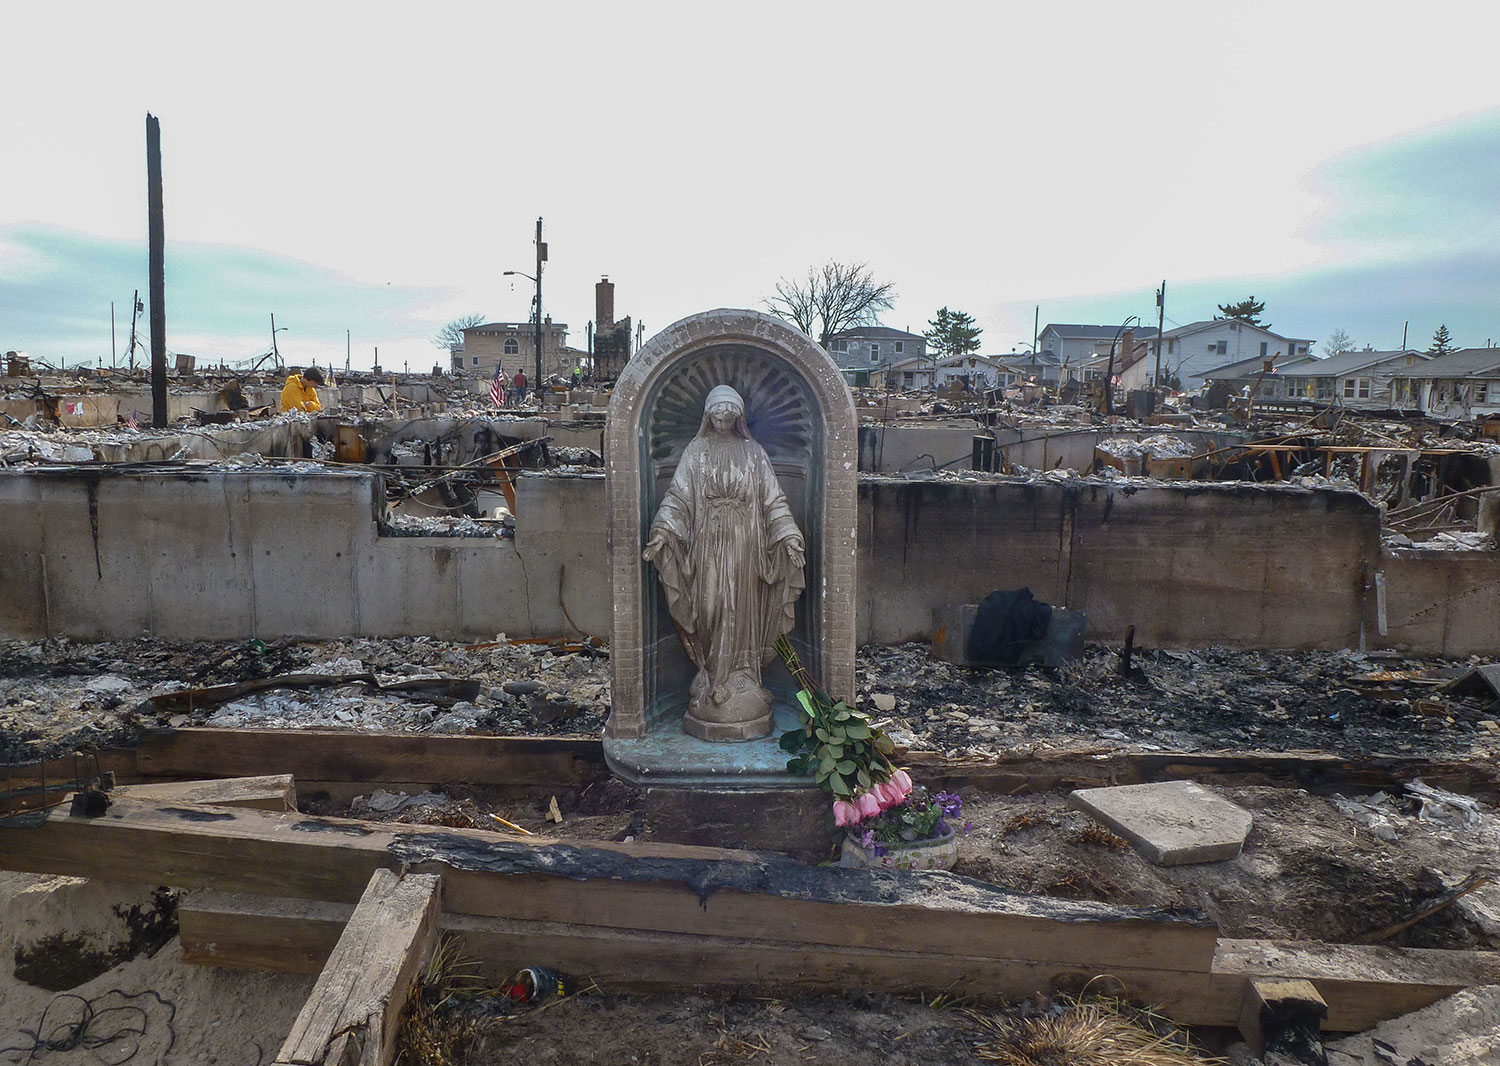 After the Breezy Point Fire, Superstorm Sandy 2012